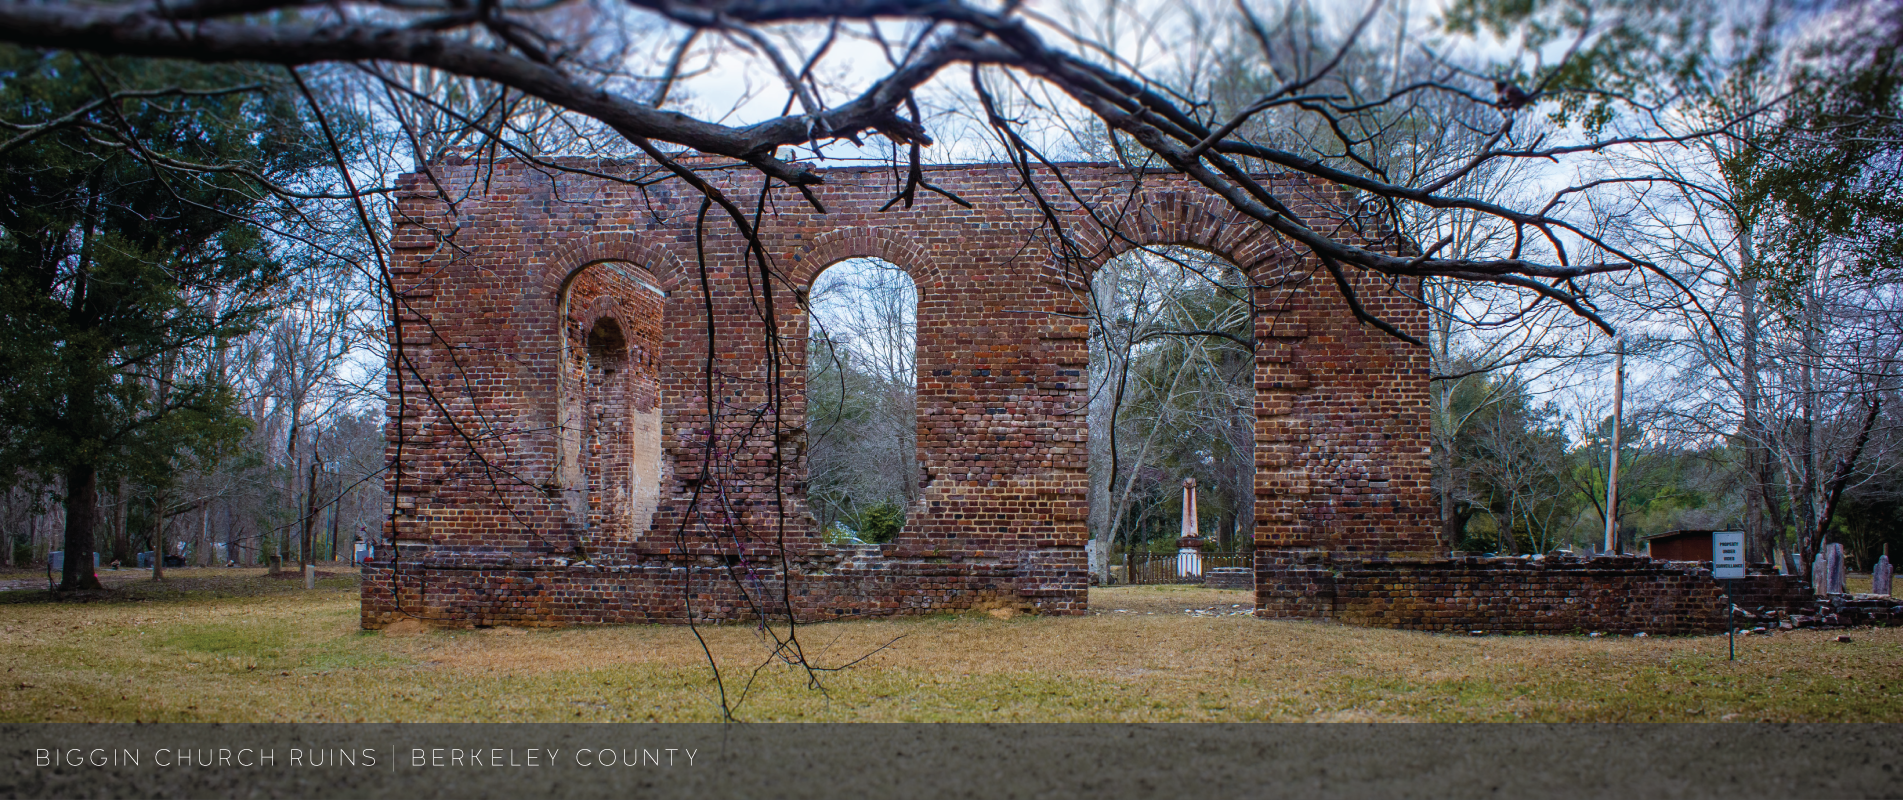 Berkeley-County-with-Text_Biggin-Church-Ruins-13